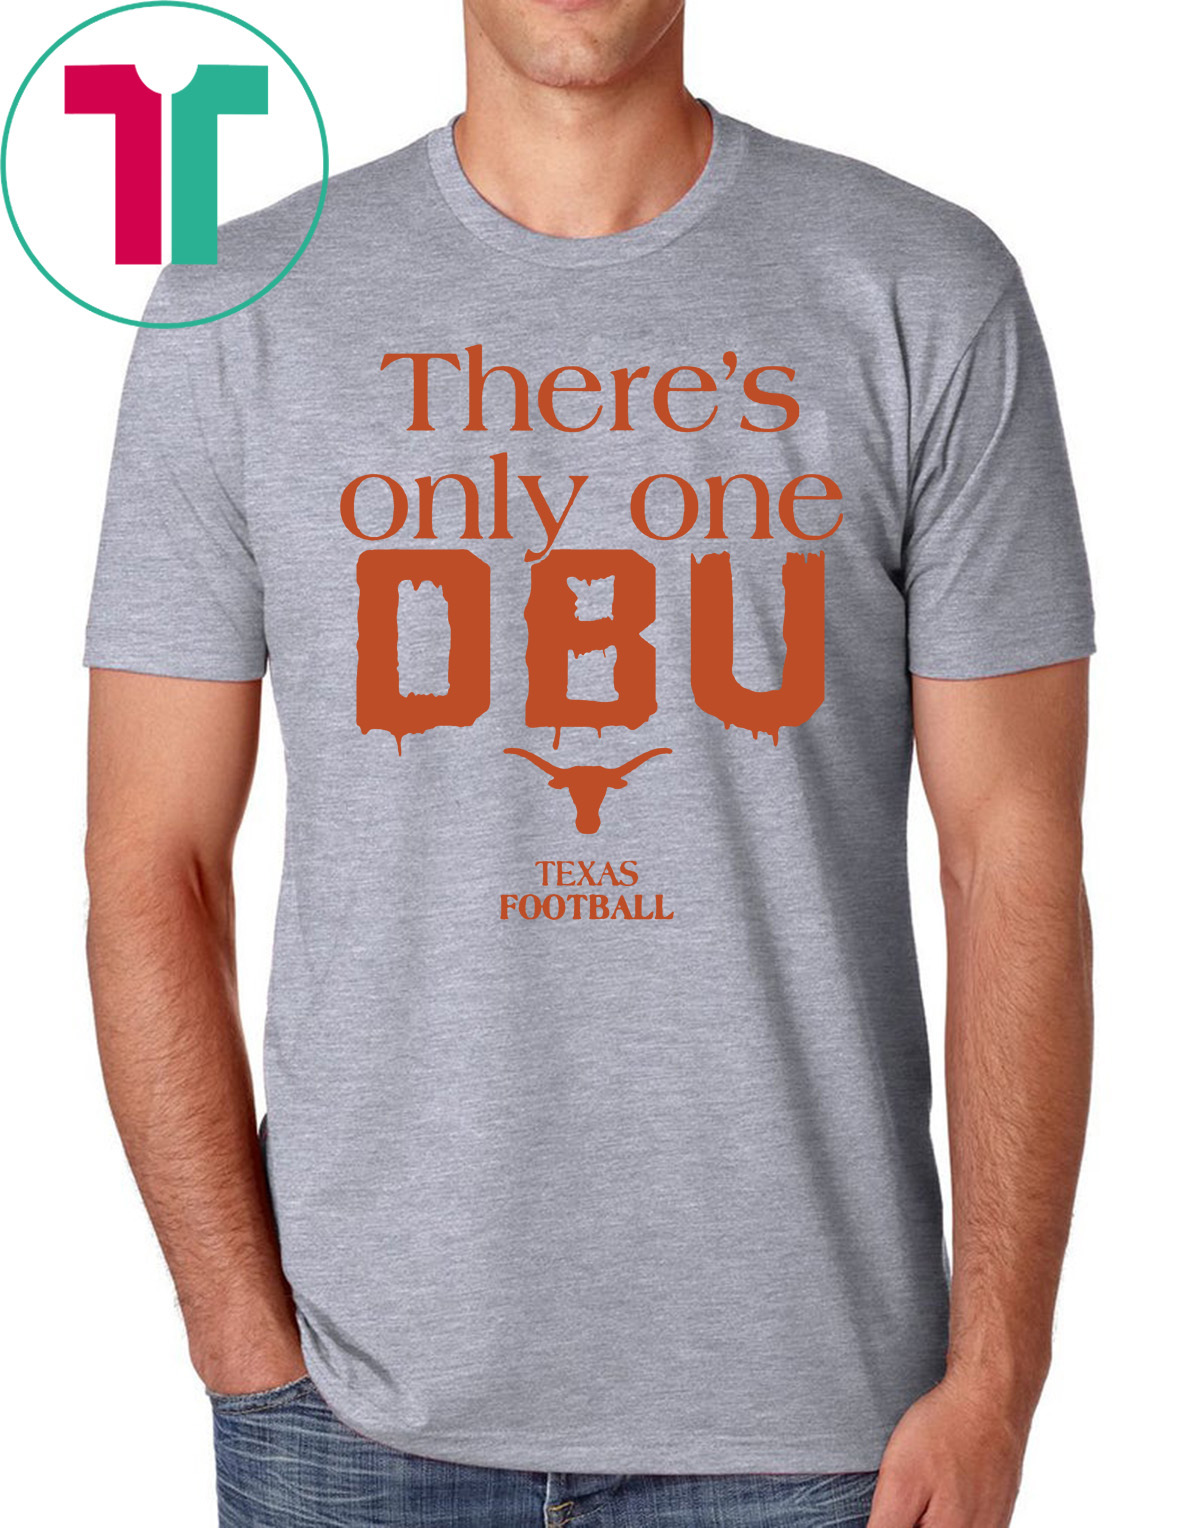 huge discount 70ad8 7f83d There's Only One DBU Texas Football Shirts